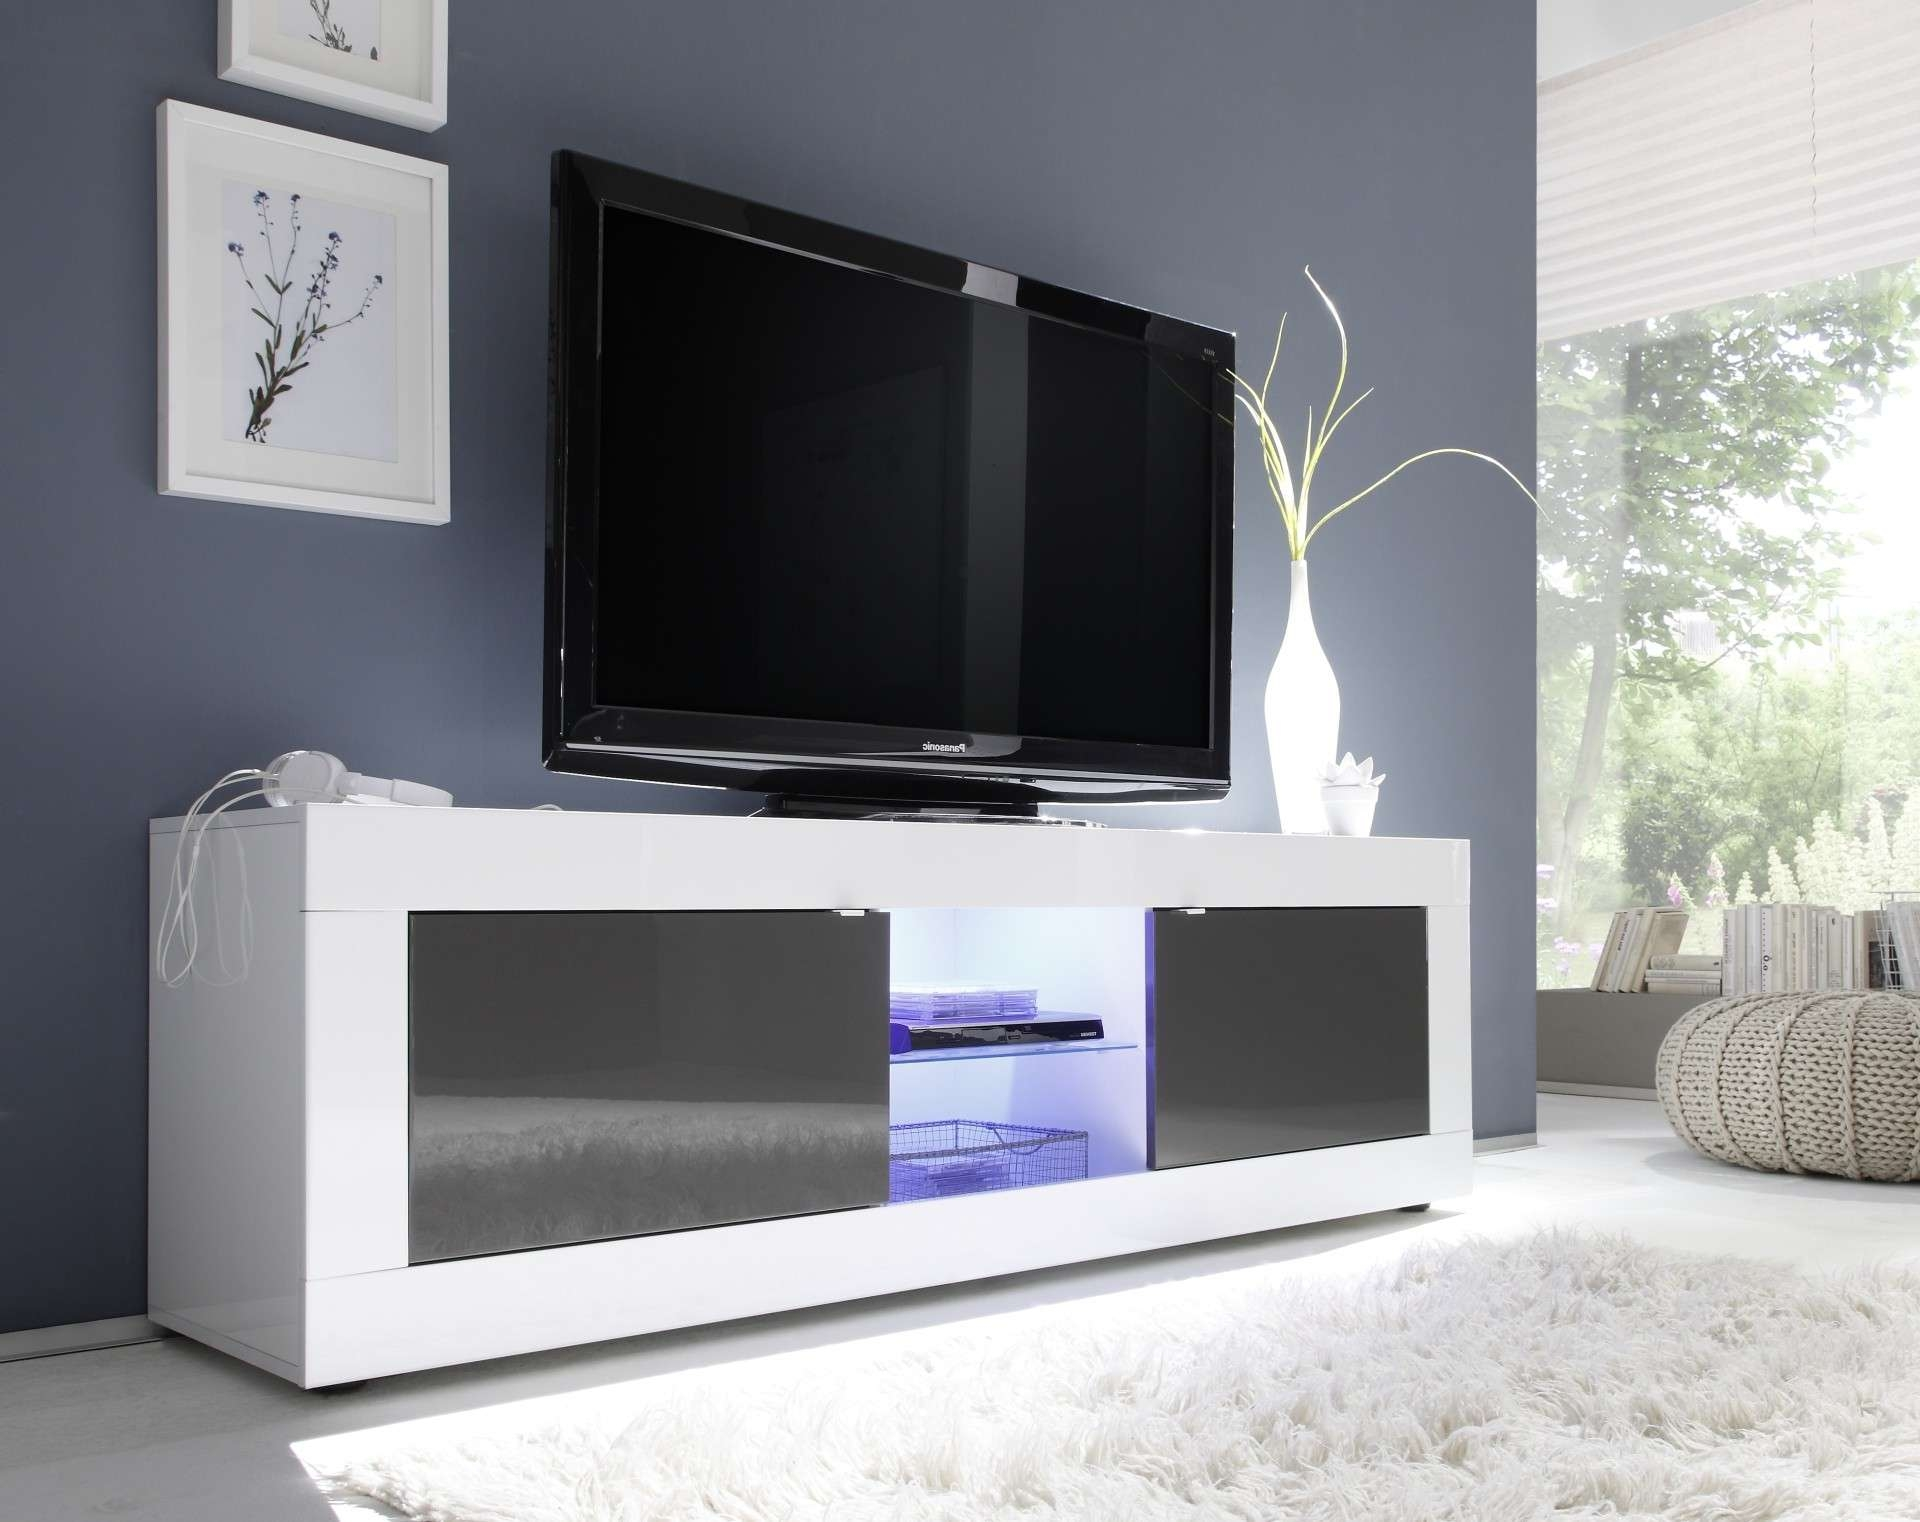 Fancy Tv Stands For 65 Inch Tvs 47 For Modern Home Decor In Fancy Tv Stands (View 7 of 15)